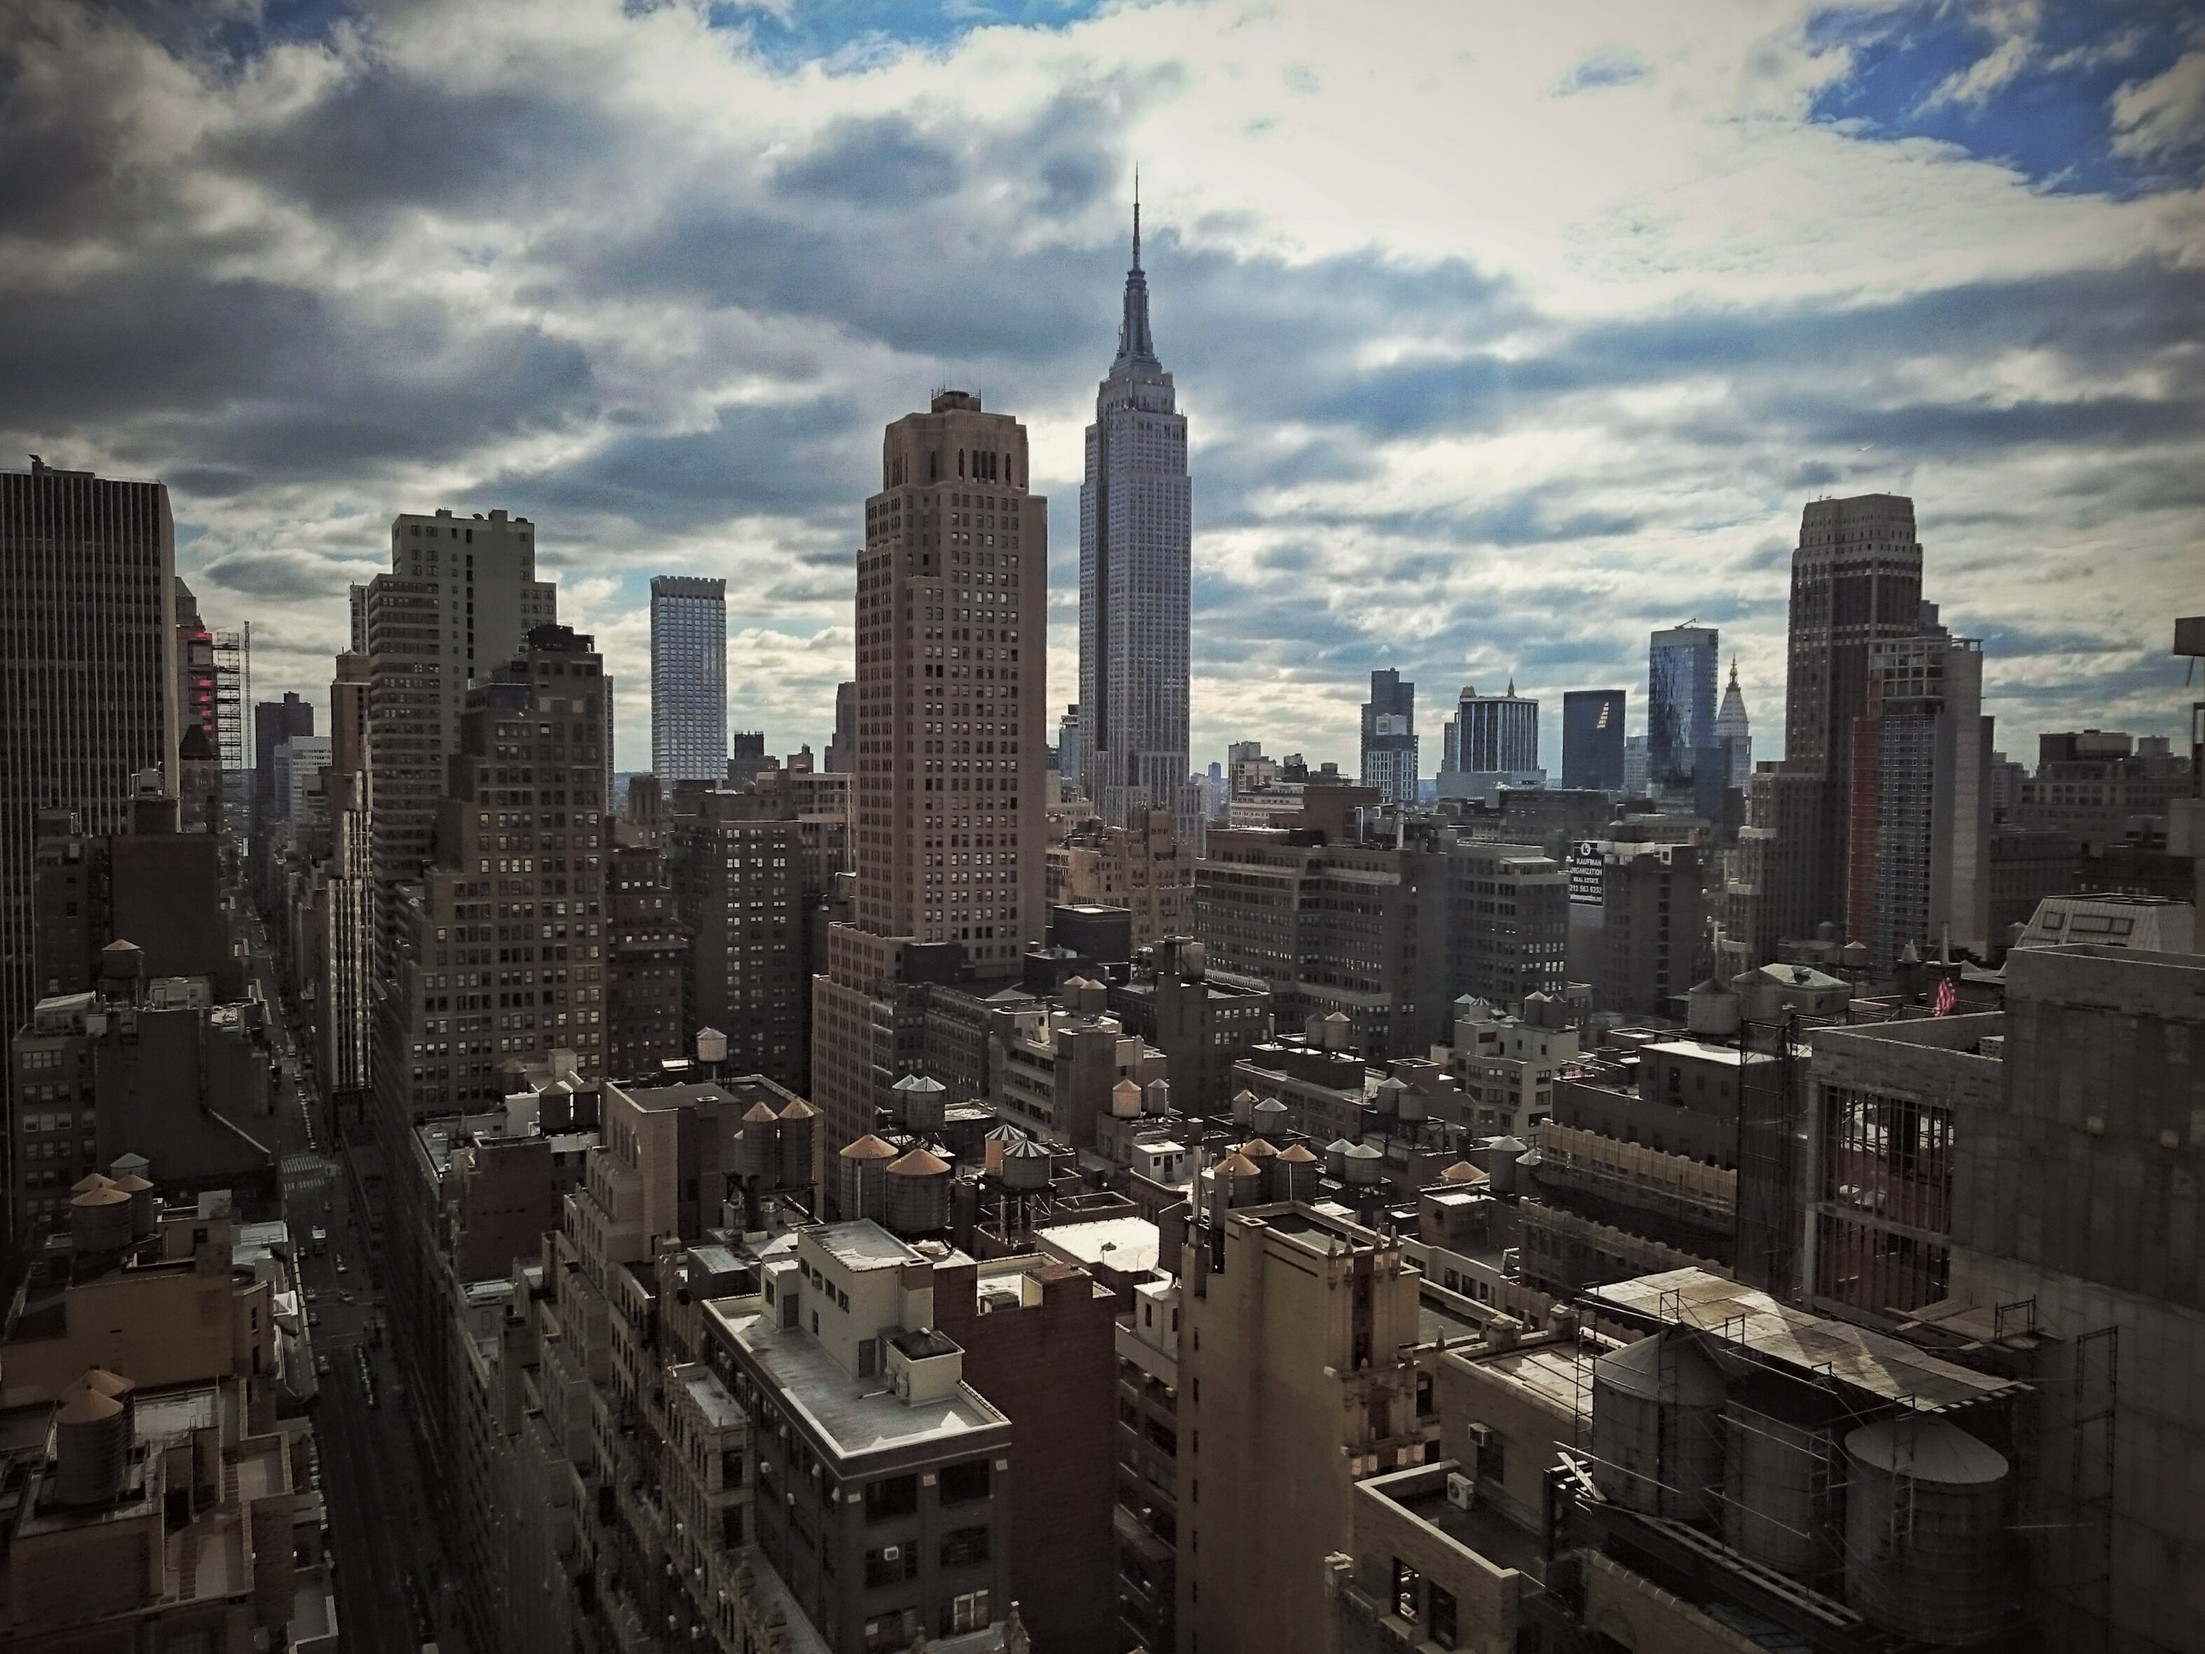 New York contrast shots with the Xperia Z3